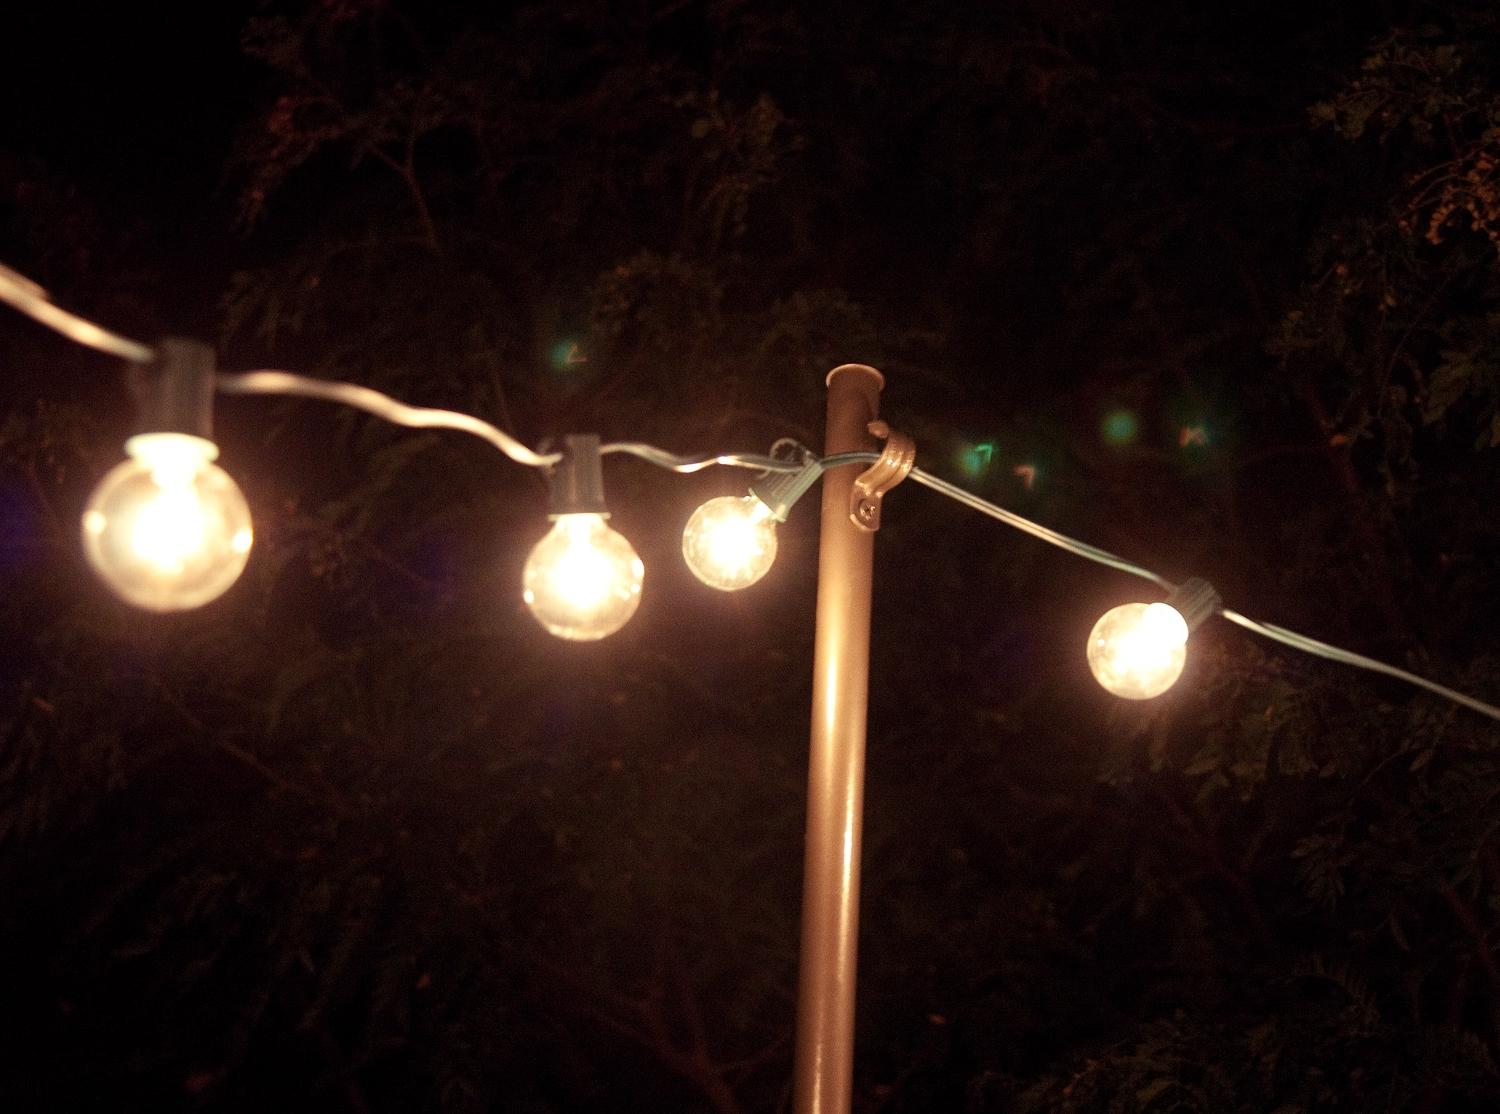 Trendy Popular Of Outdoor Patio Lights String Bright July Diy Outdoor With Regard To Hanging Outdoor String Lights At Home Depot (View 4 of 20)